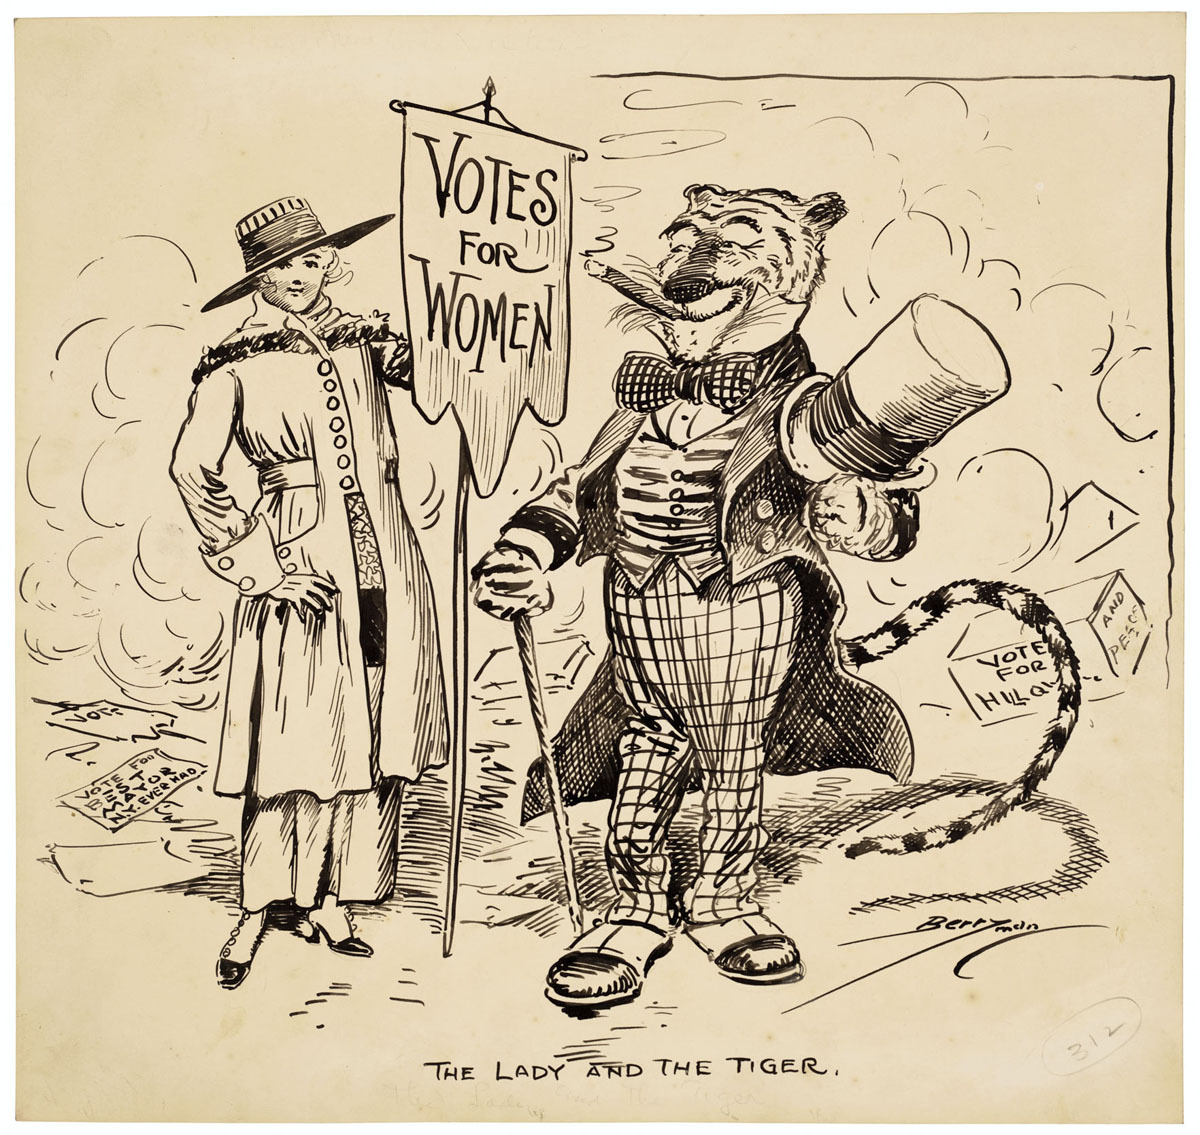 The Lady and the Tiger, 11/07/1917 This cartoon by Clifford K. Berryman depicts the two big winners on New York's Election Day, 1917 — Women's Suffrage, and the Tammany Hall political machine, represented by the Tammany Tiger.   While some states allowed women to vote, no national law guaranteed women that right until the 19th Amendment to the Constitution was ratified in 1920.